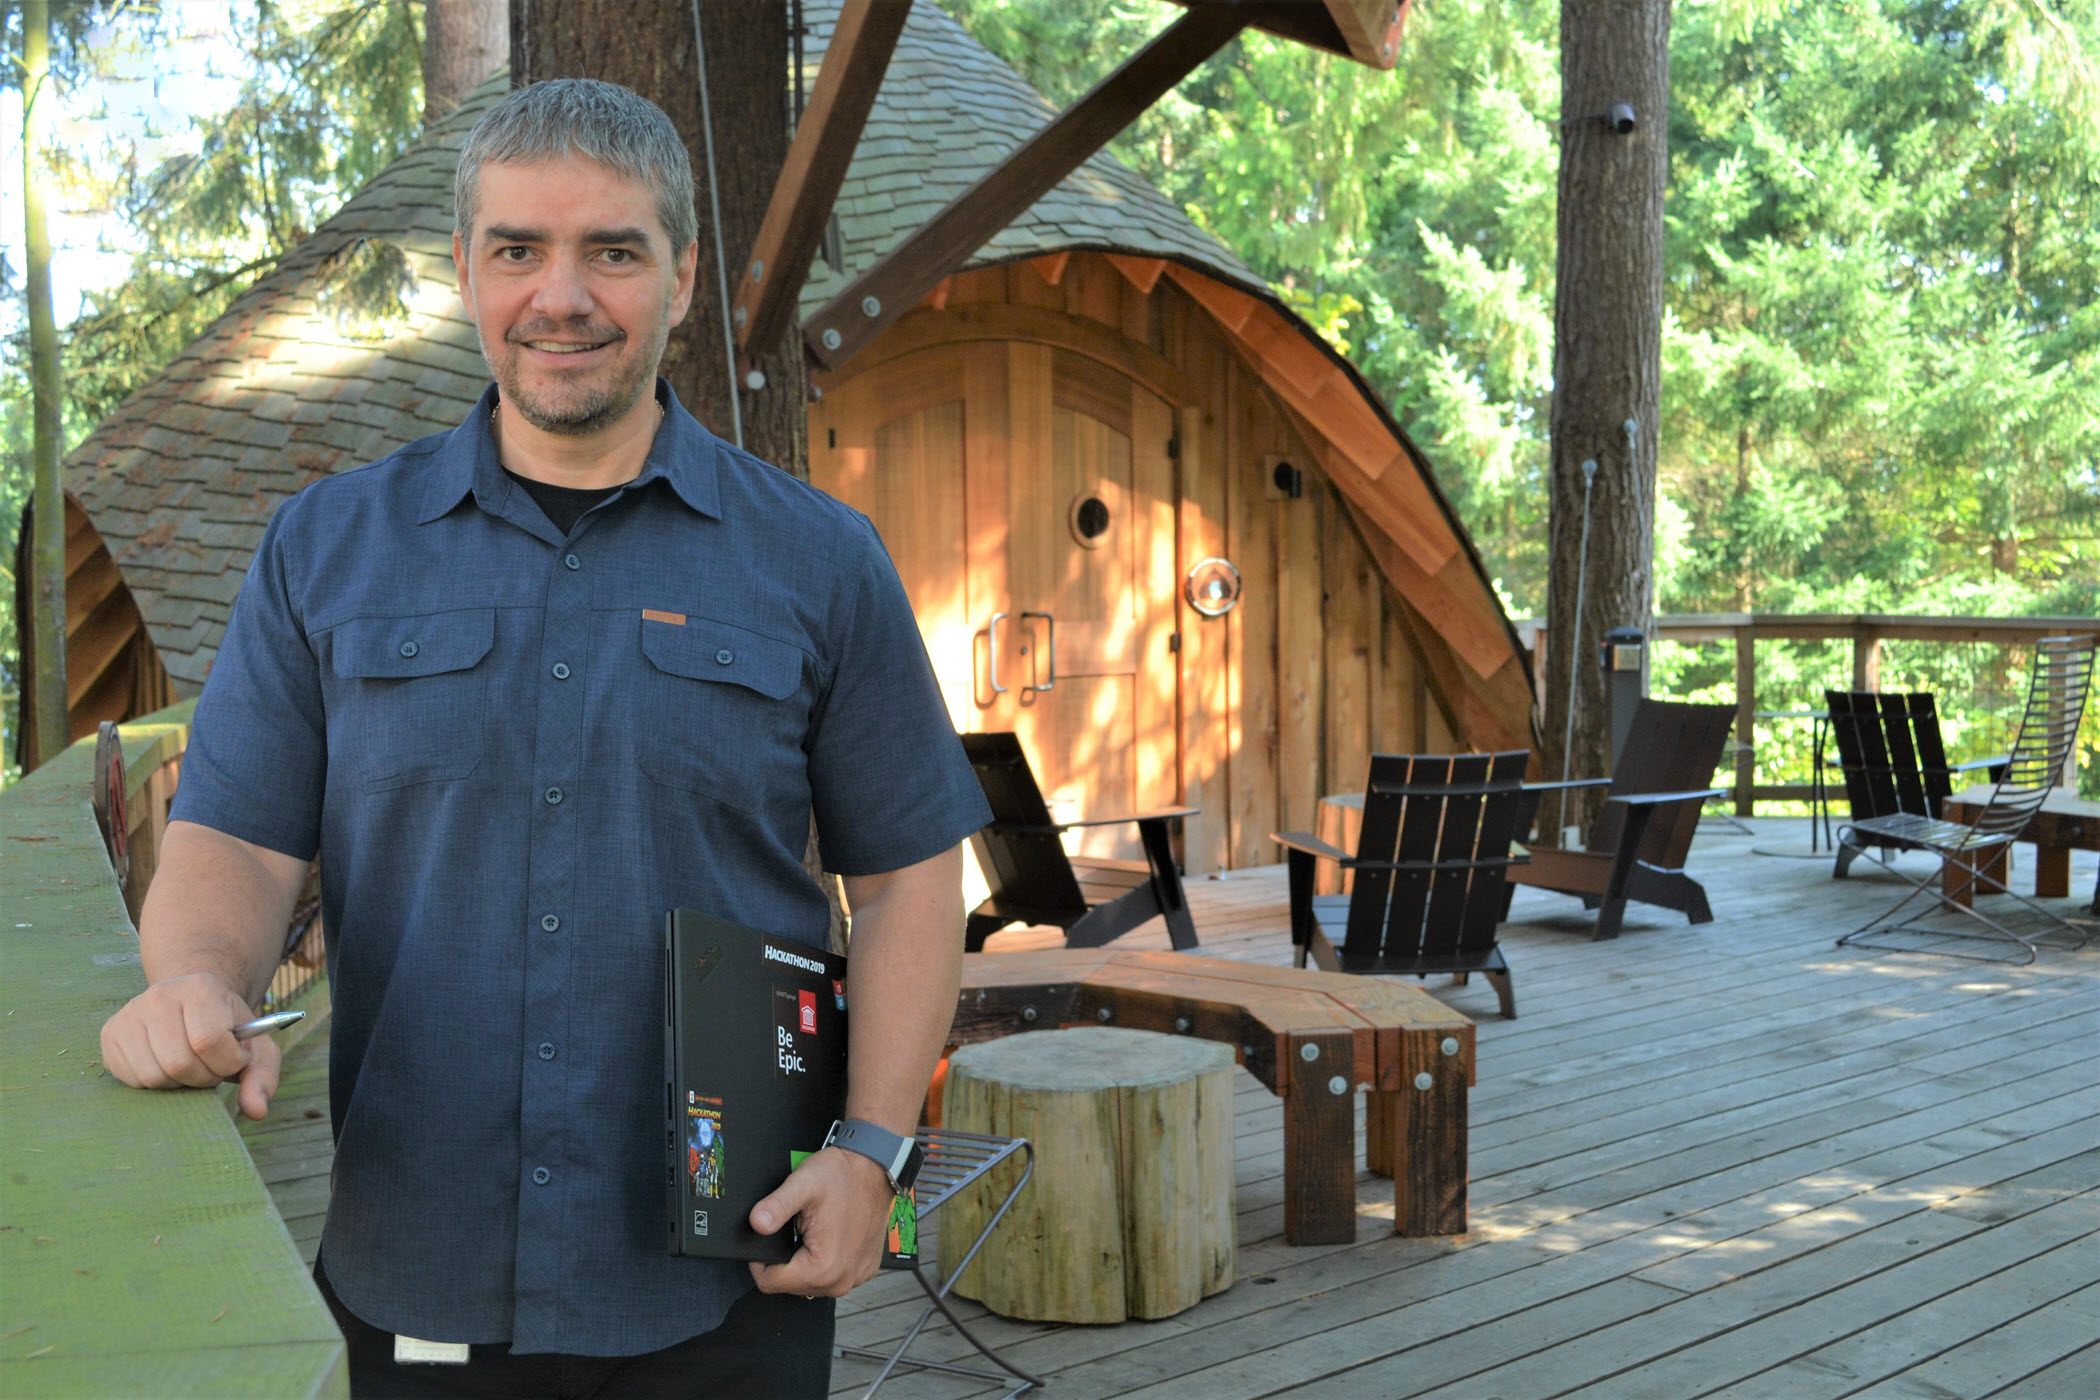 Dan Benedict, looking at the camera, stands with his PC on the balcony of one of the Microsoft treehouses on the company's Redmond campus.